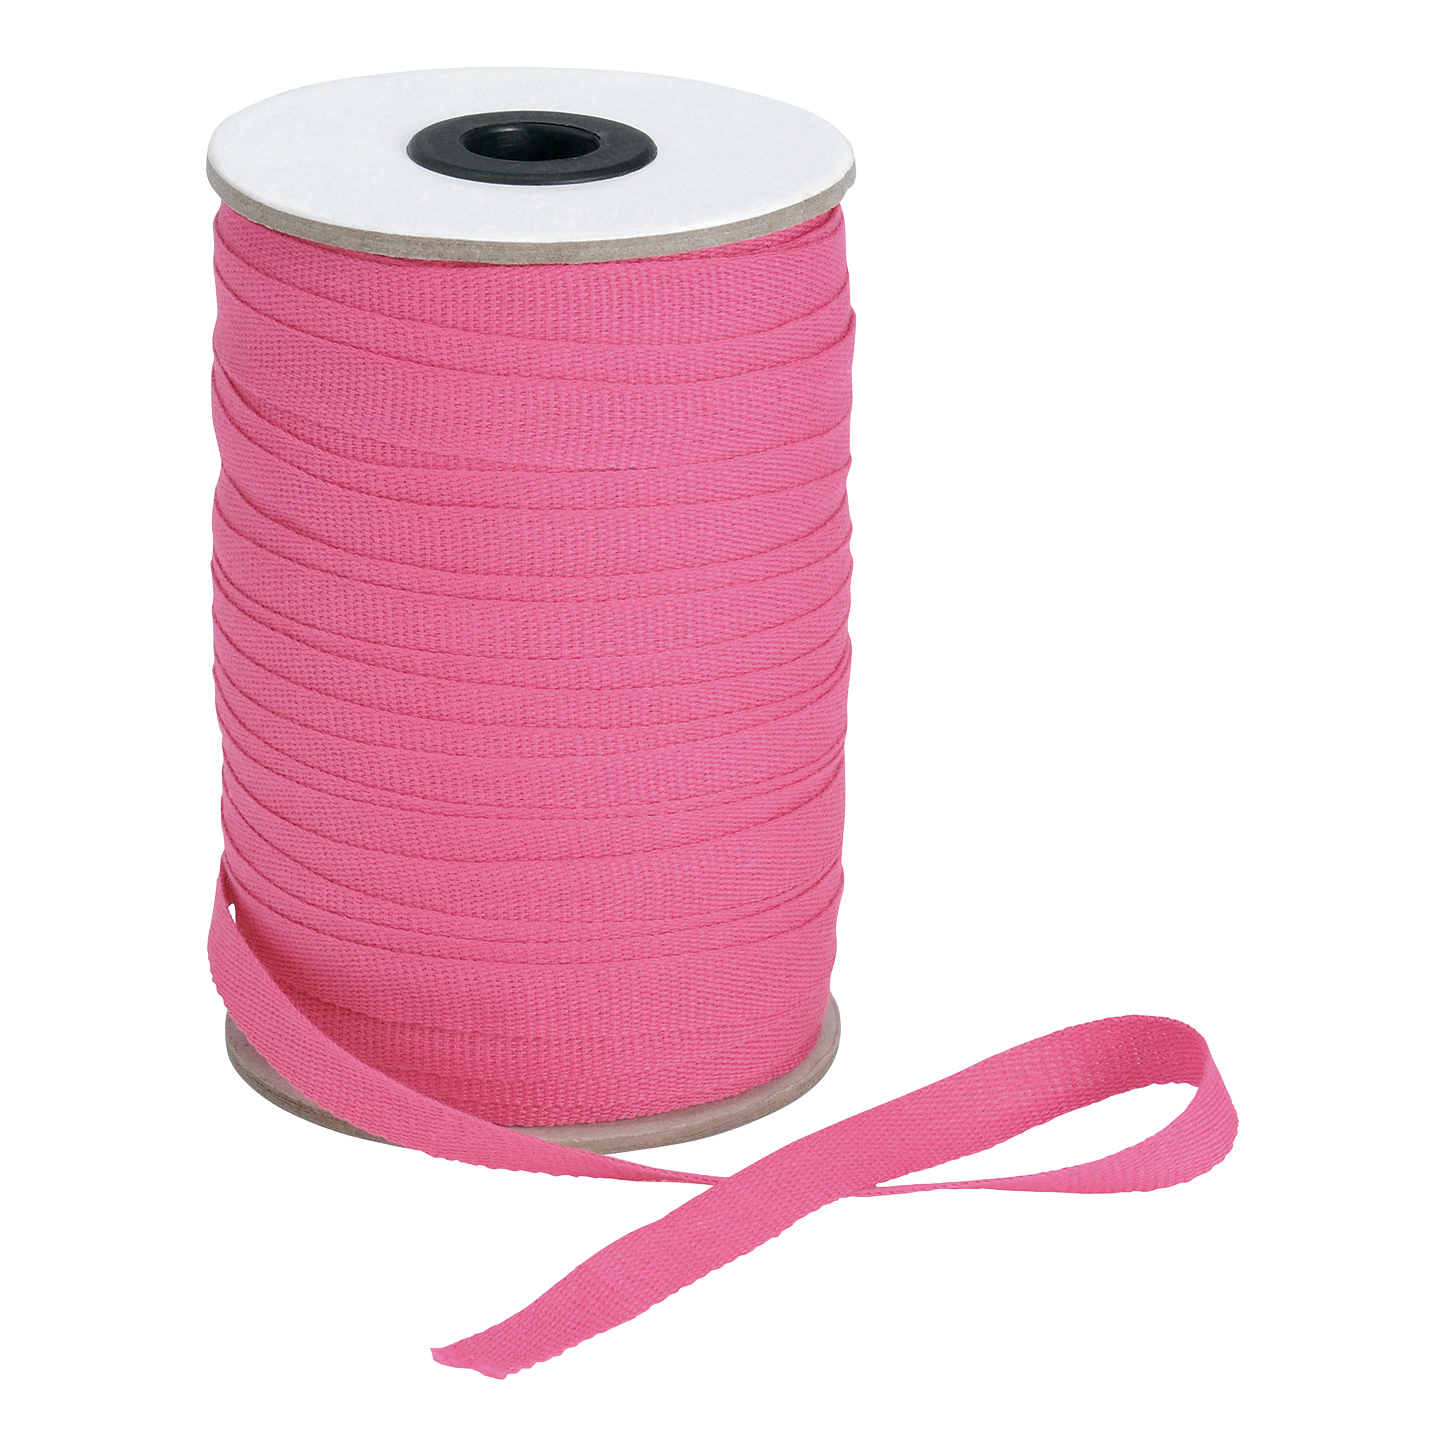 Legal Sundries 5 Star Office Legal Tape Reel 10mmx100m Pink